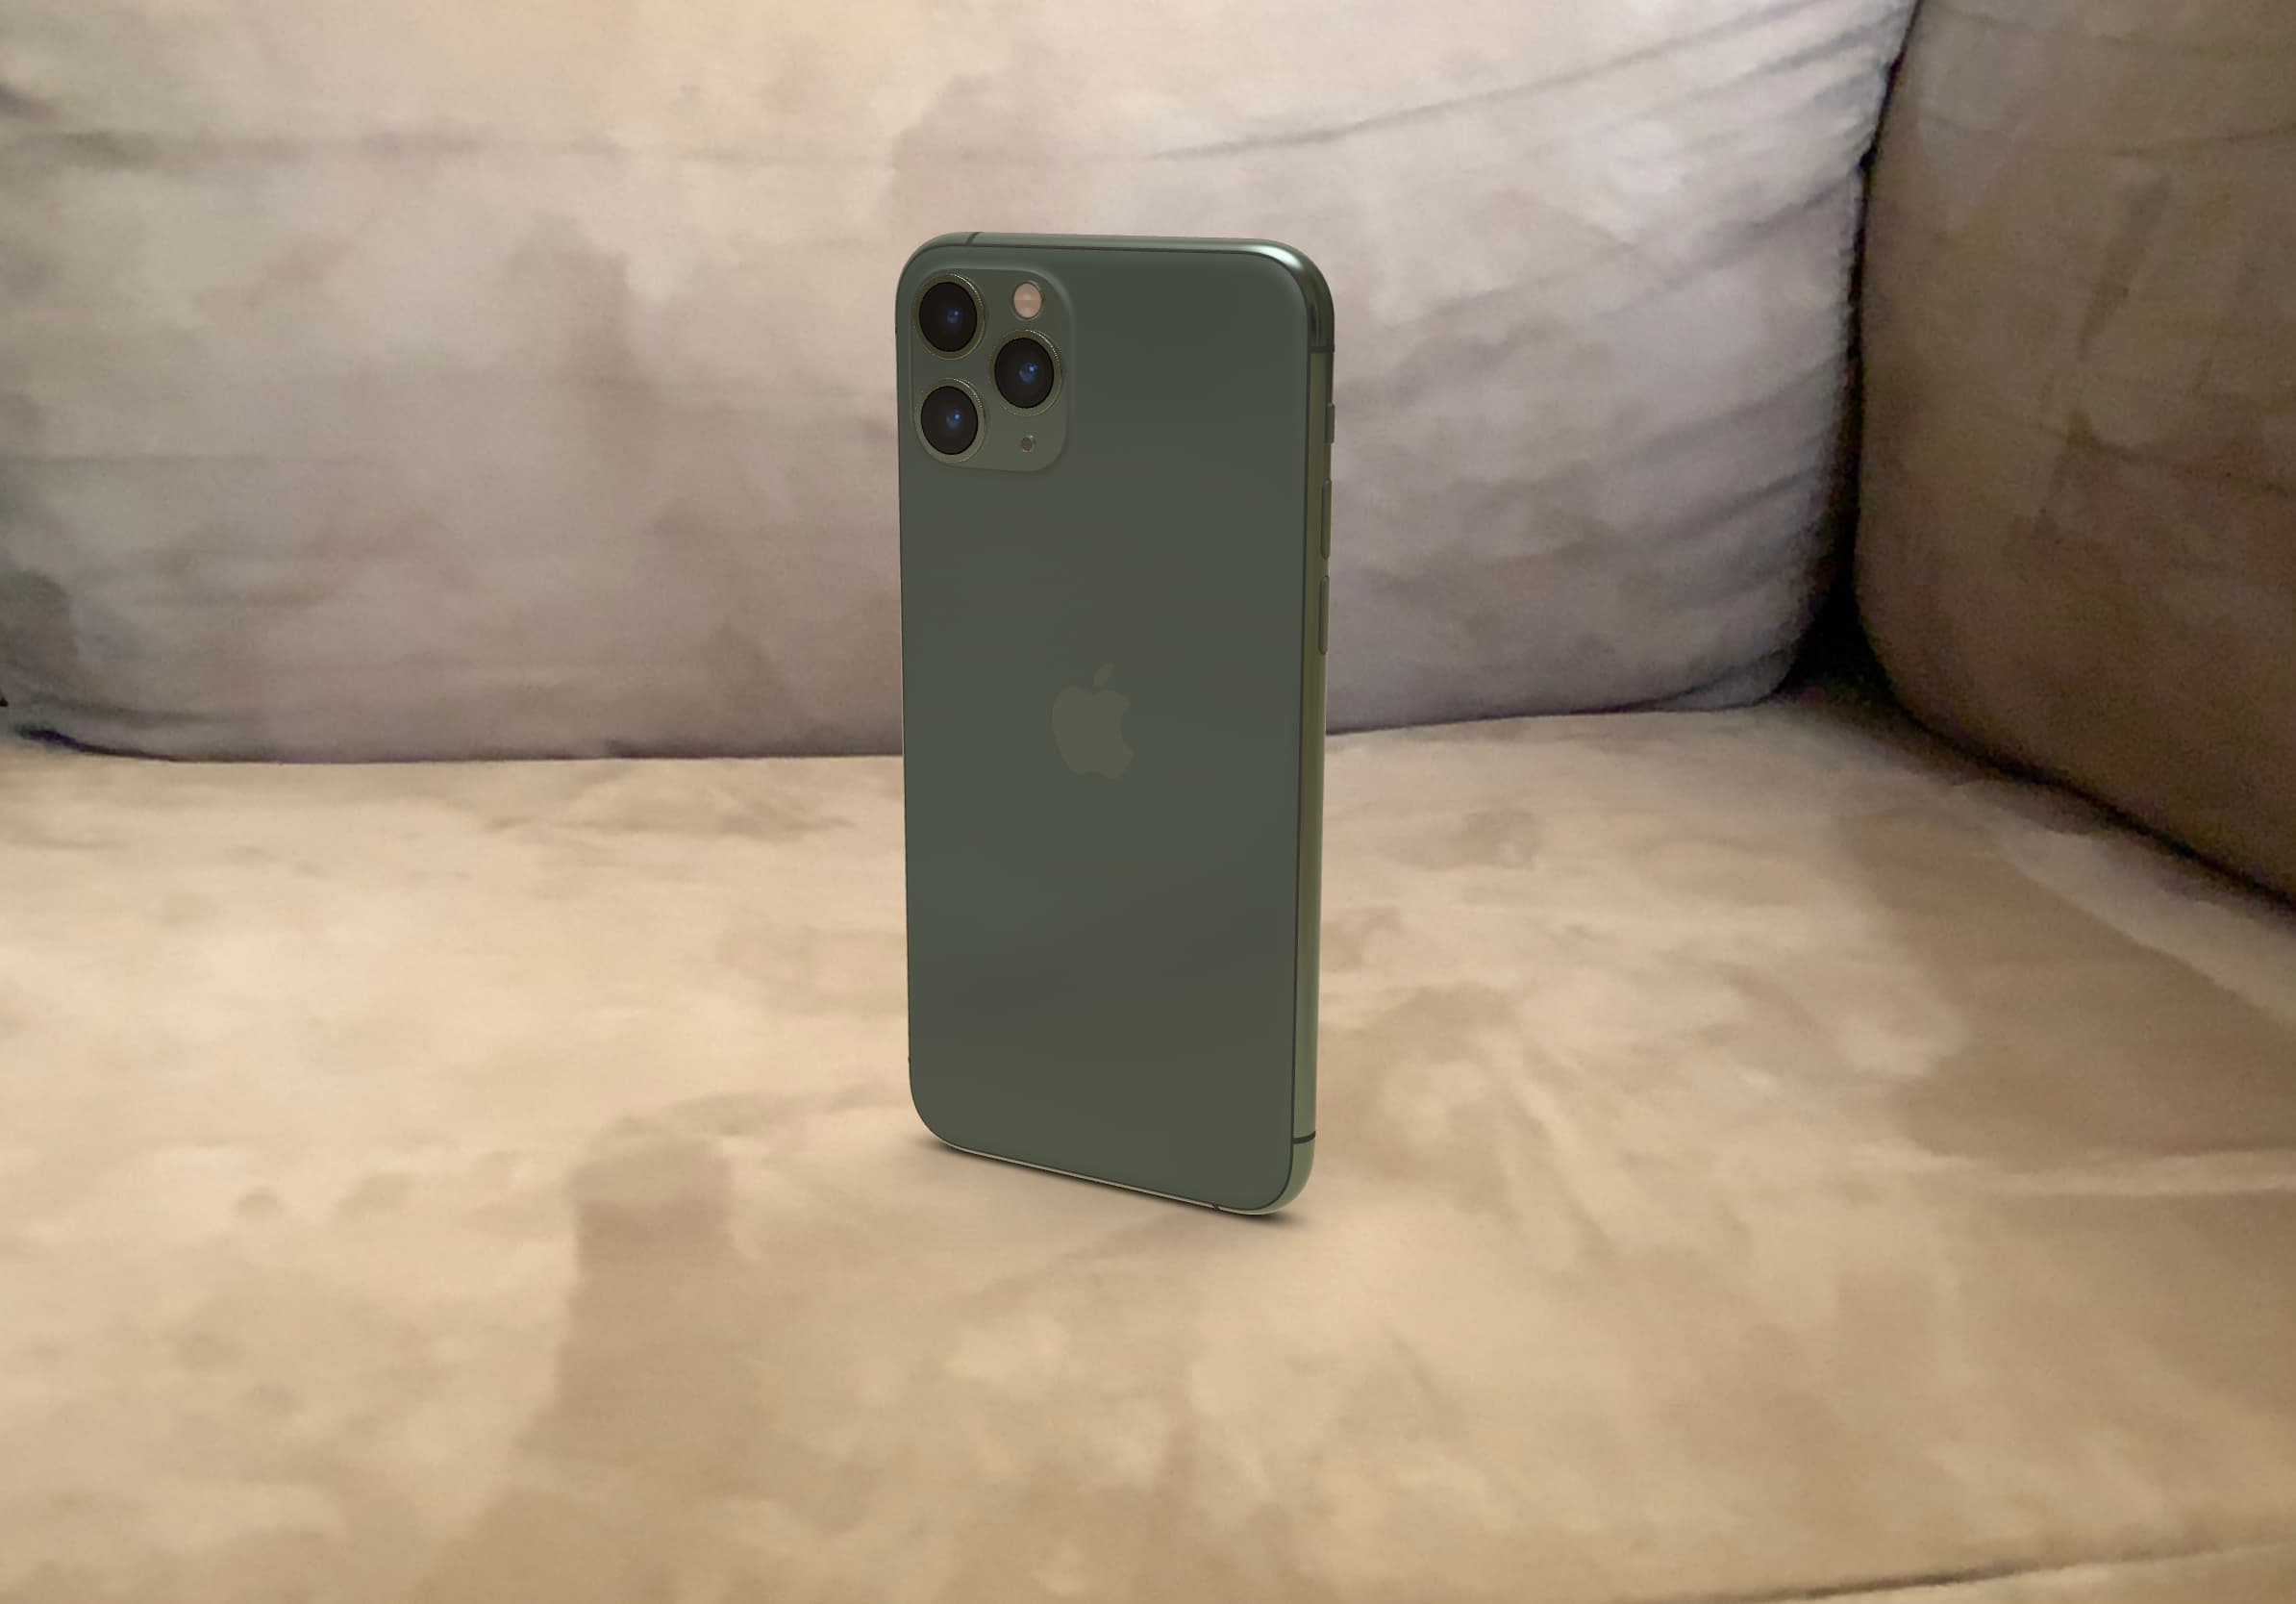 iPhone 12 Thinner than iPhone 11 pro max